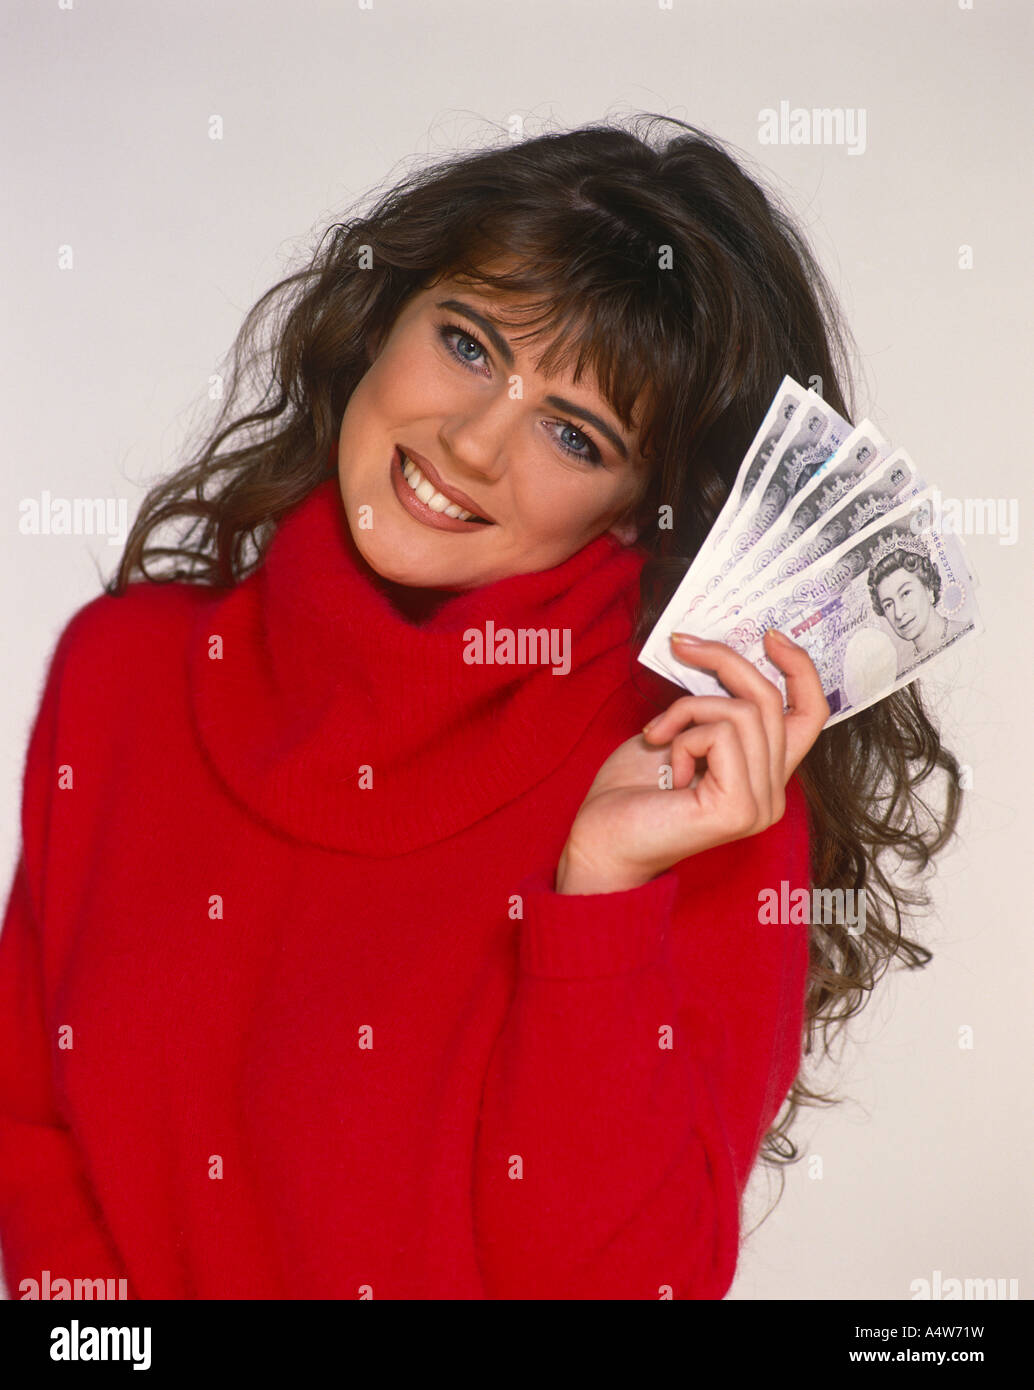 ANGELA LEA IN RED SWEATER HOLDING HANDFUL OF NOTES - Stock Image